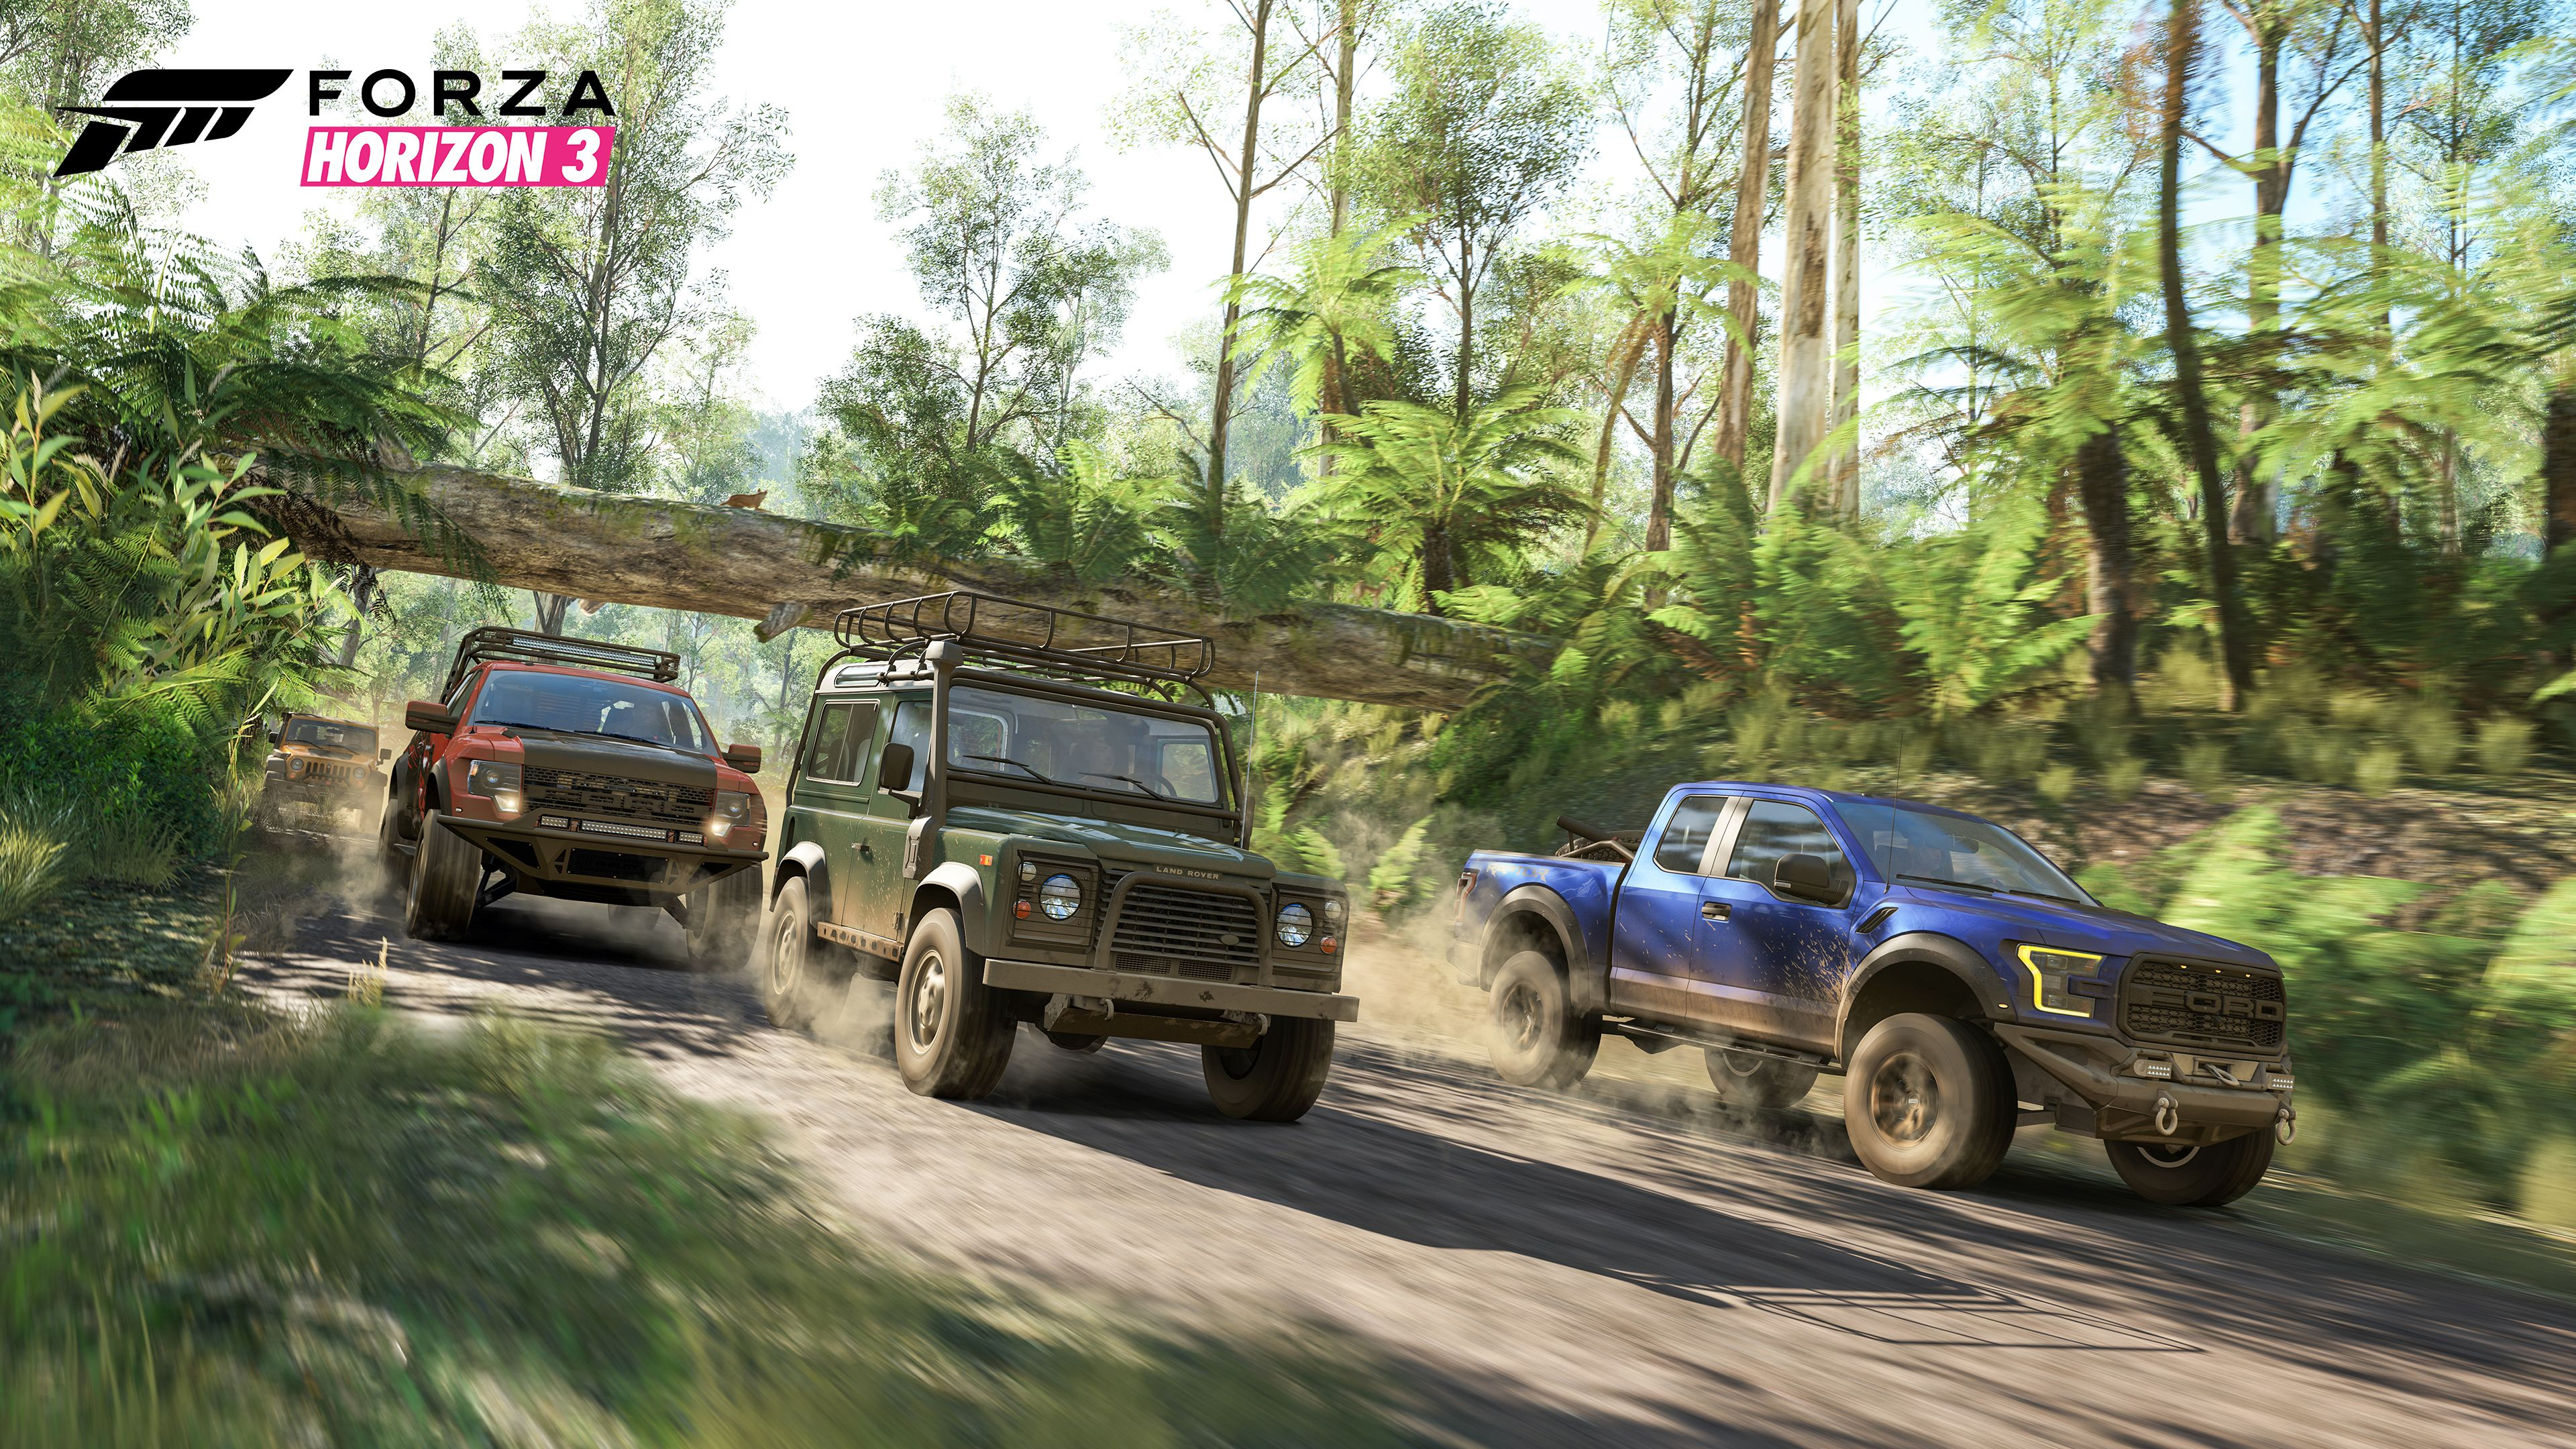 Check out the first and second gen Raptors! Photo: hdwallpapers